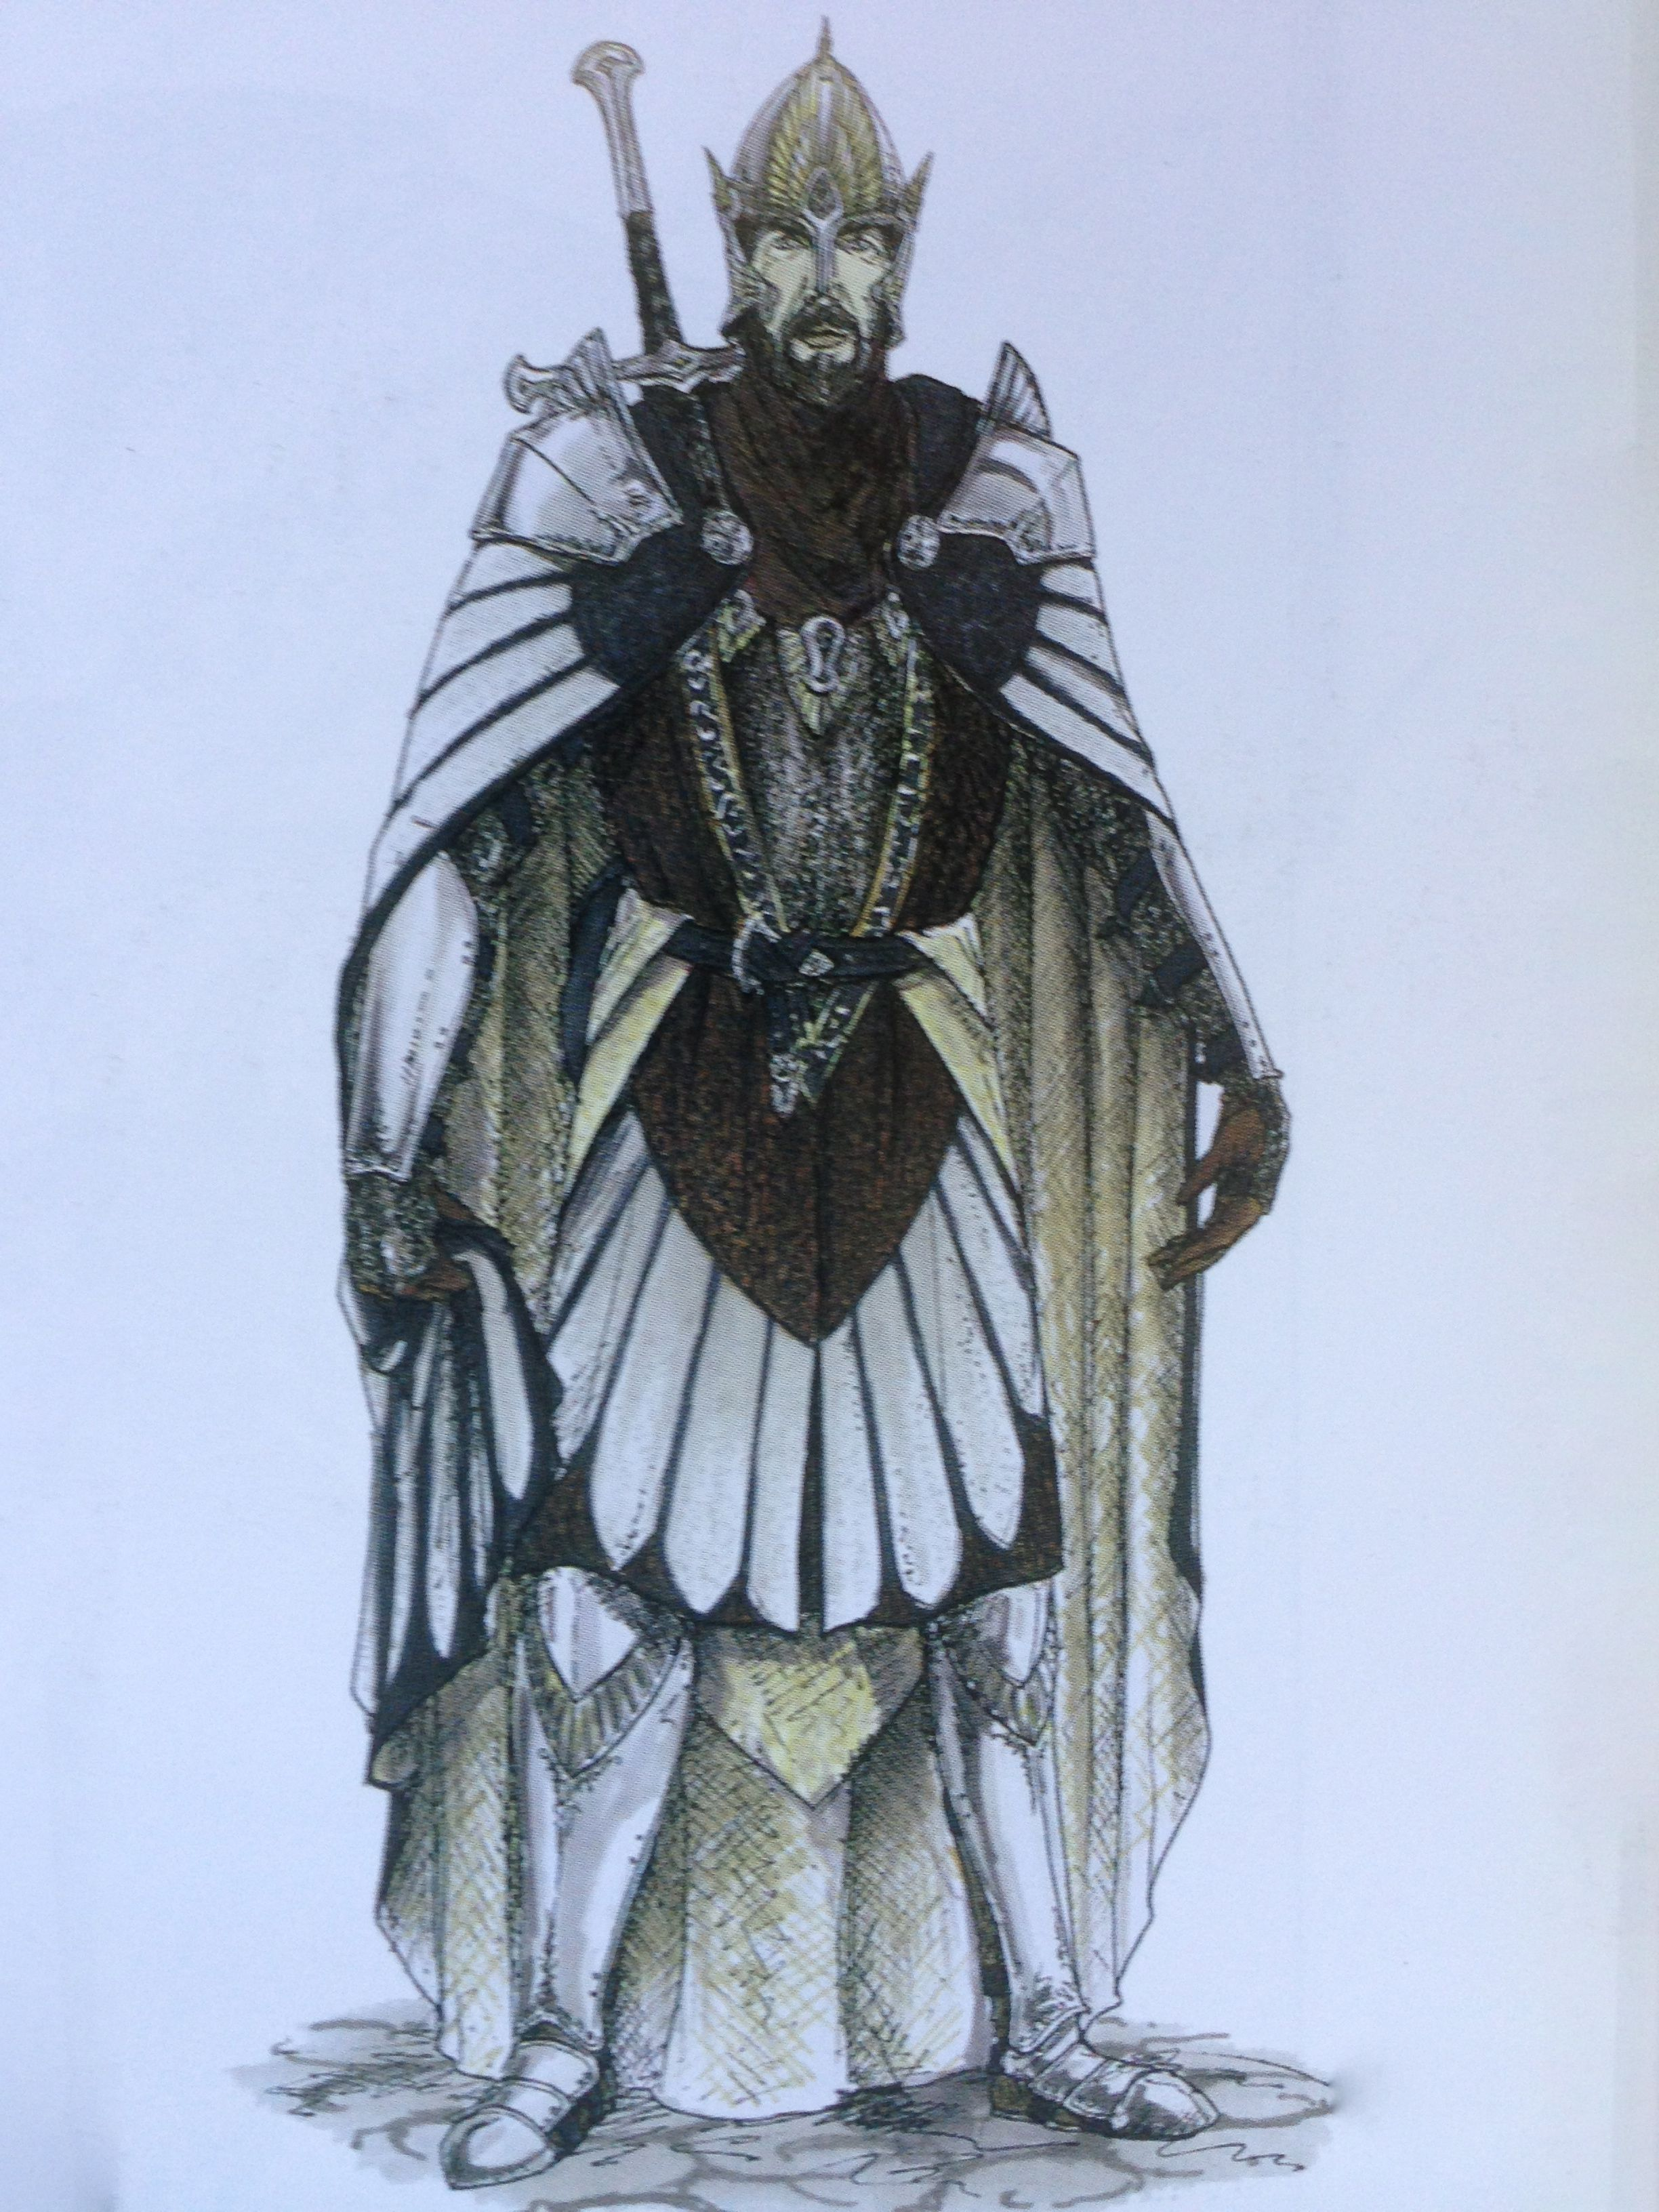 Concept Art Of Elendil In Armor From The Prologue Sequence